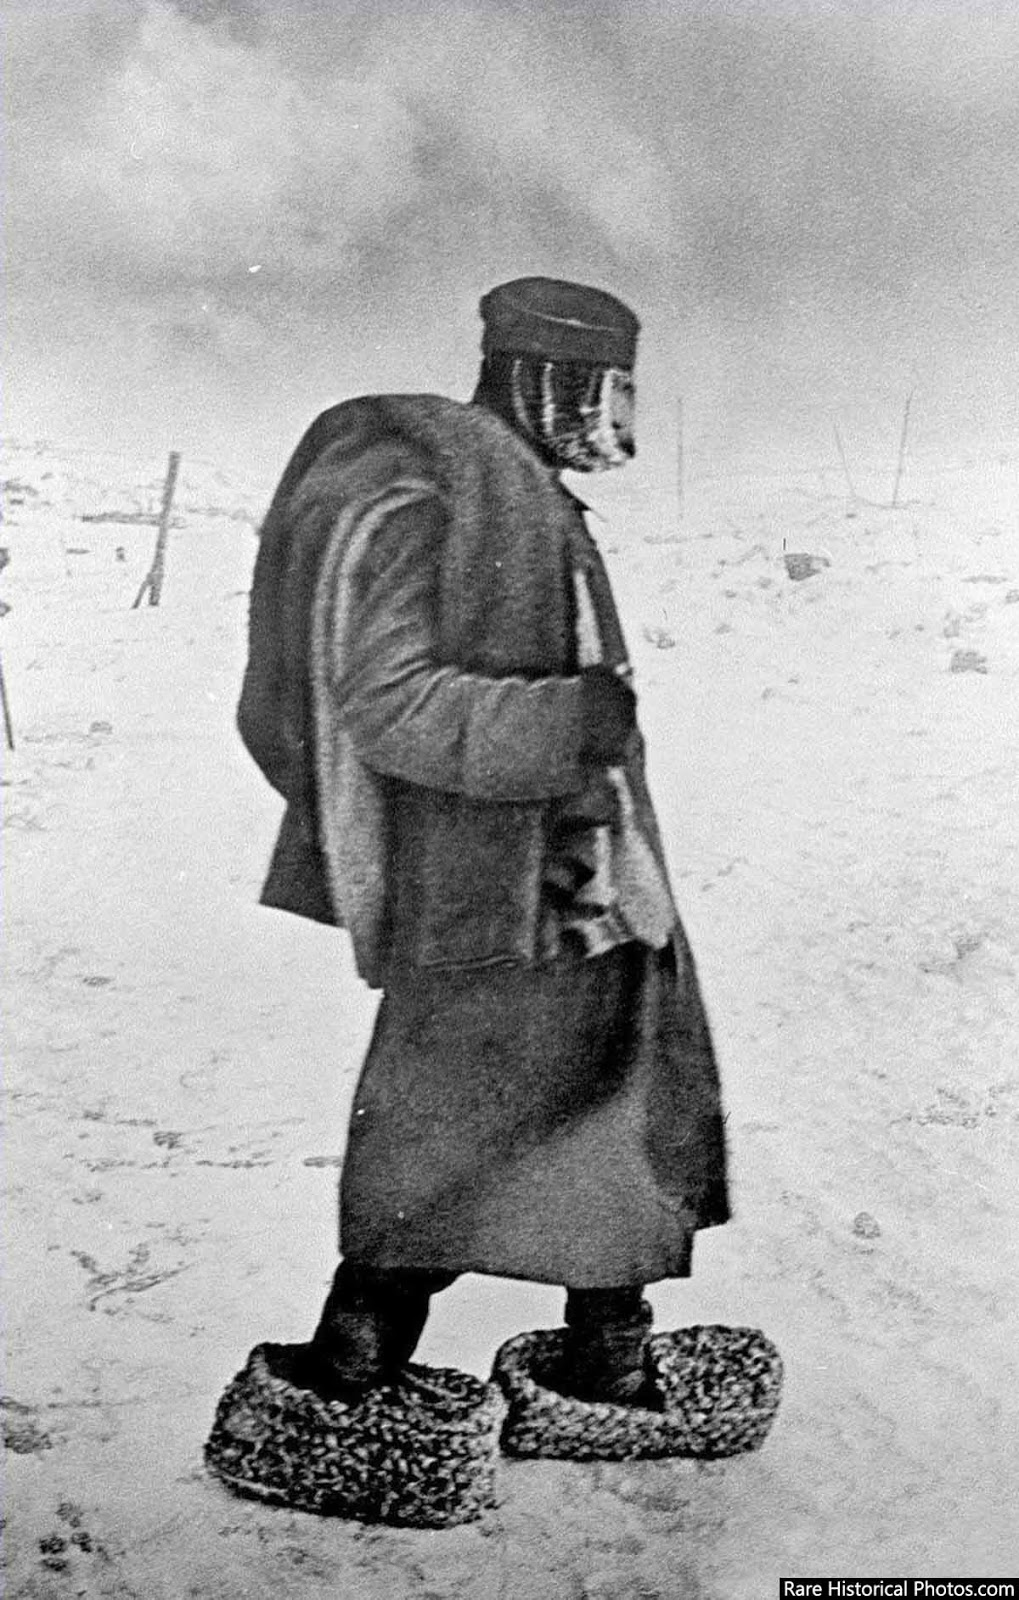 A captured German soldier. The desperate Germans had improvised to survive.